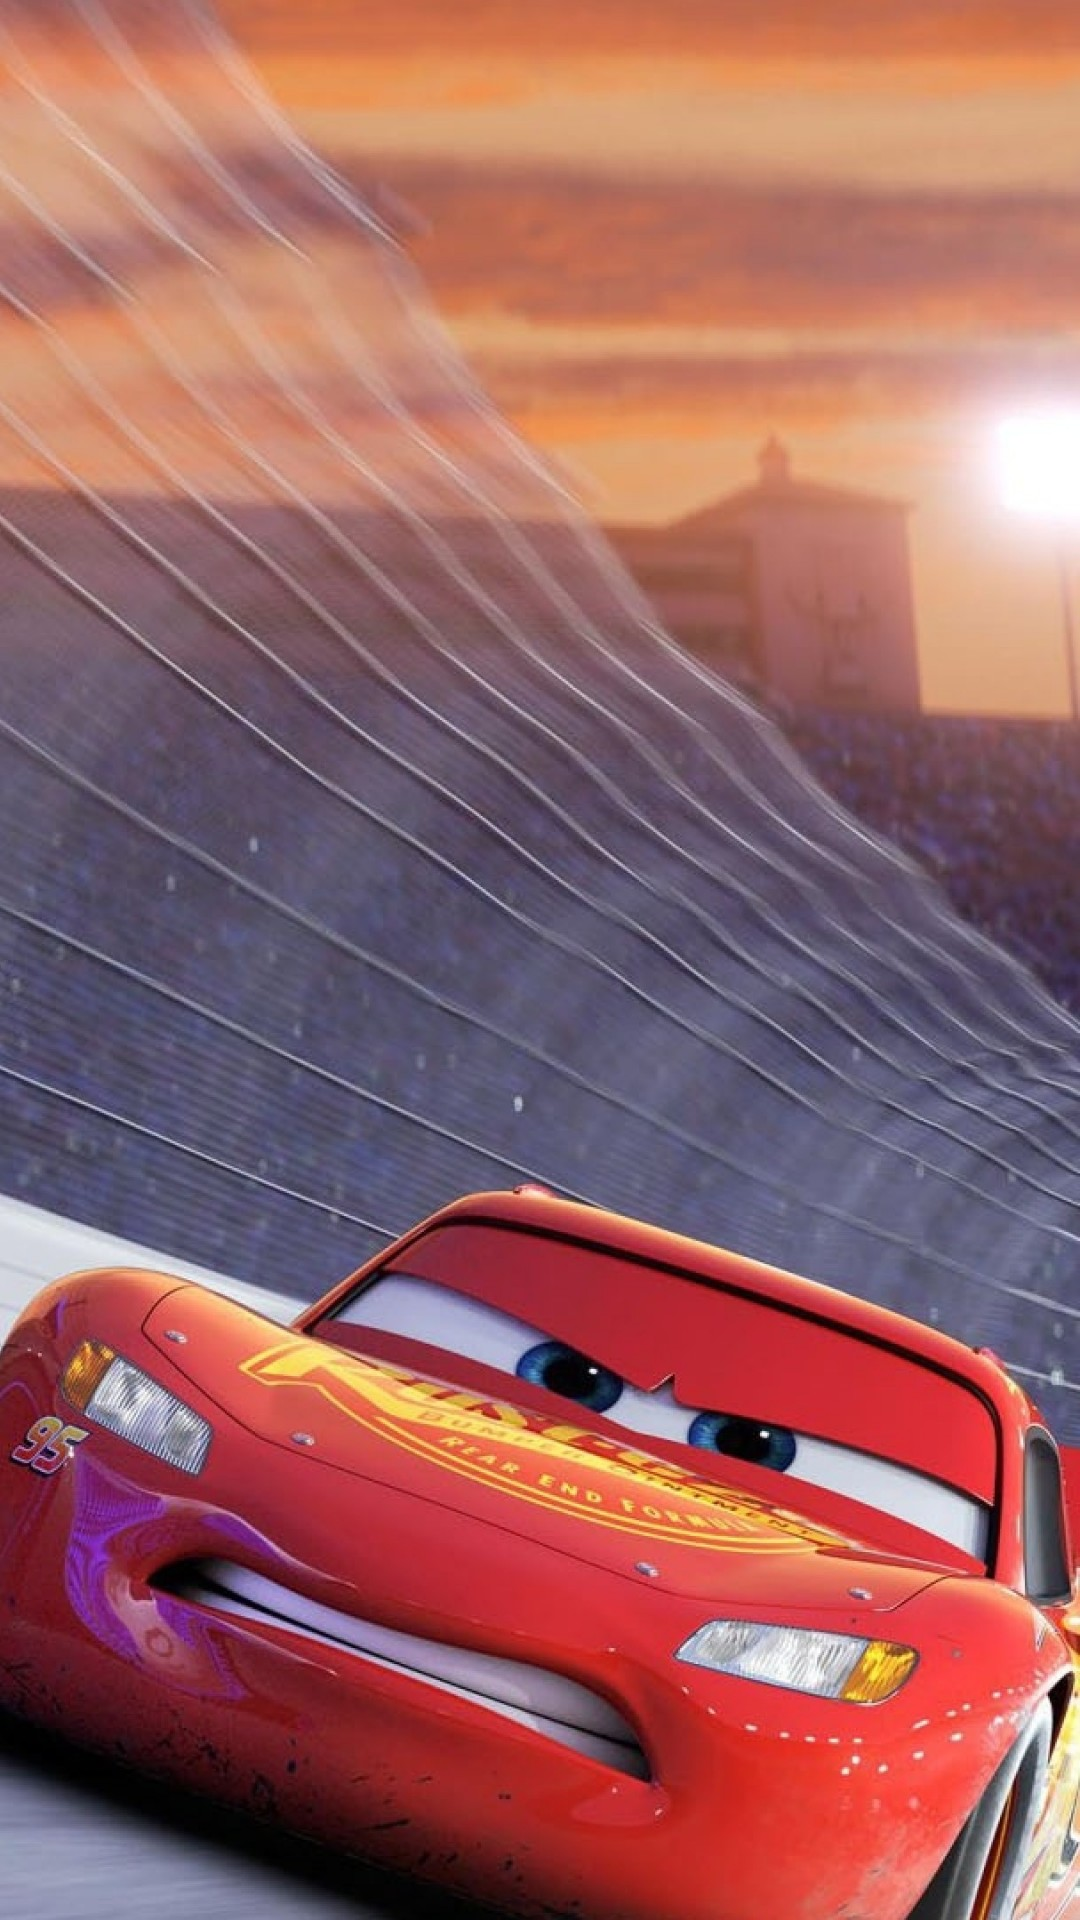 Wallpaper cars 3 4k lightning mcqueen poster movies 13674 - Cars 3 wallpaper ...